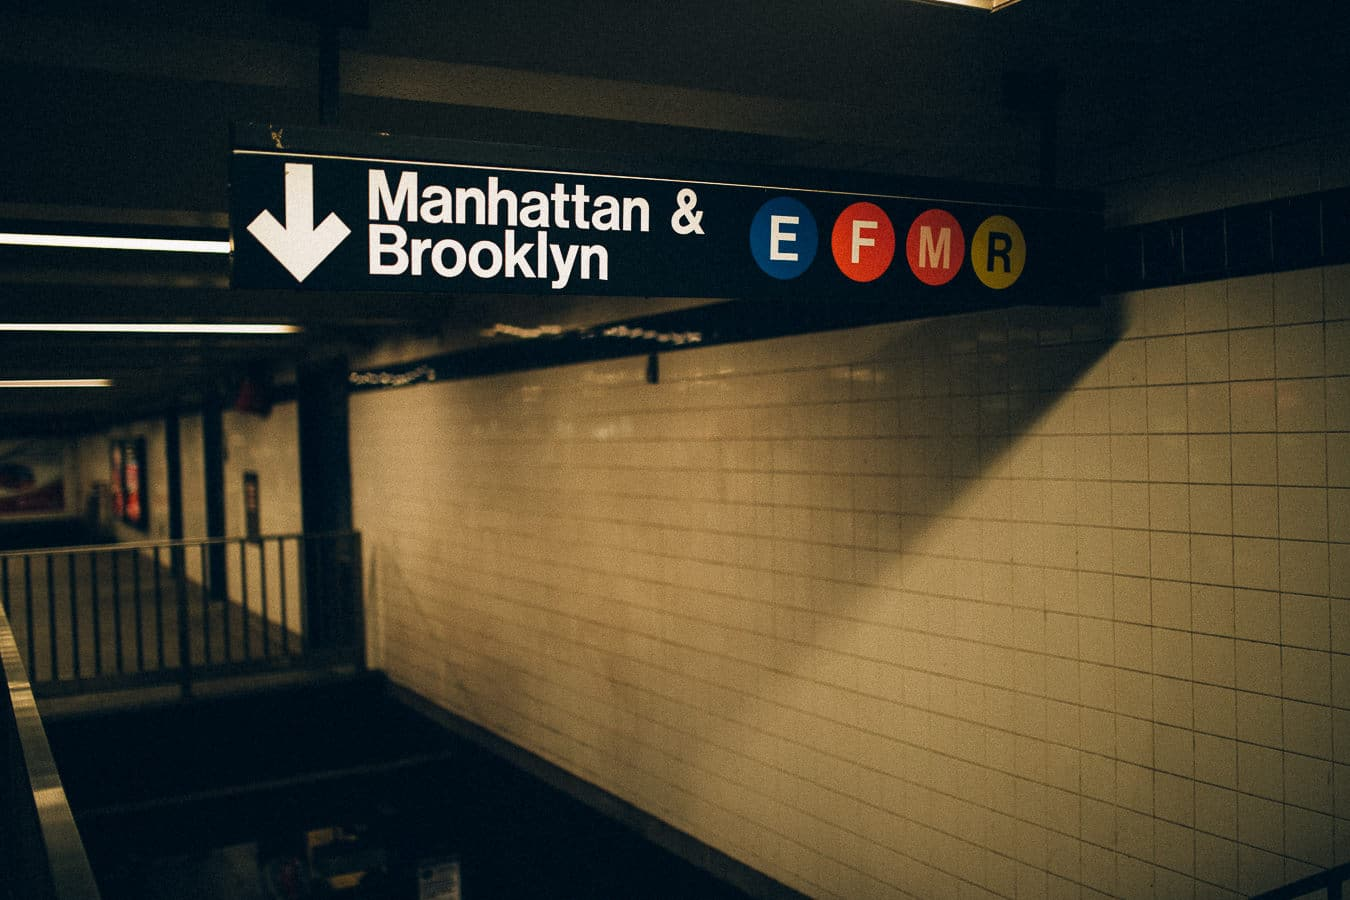 Manhattan Brooklyn New York City Subway